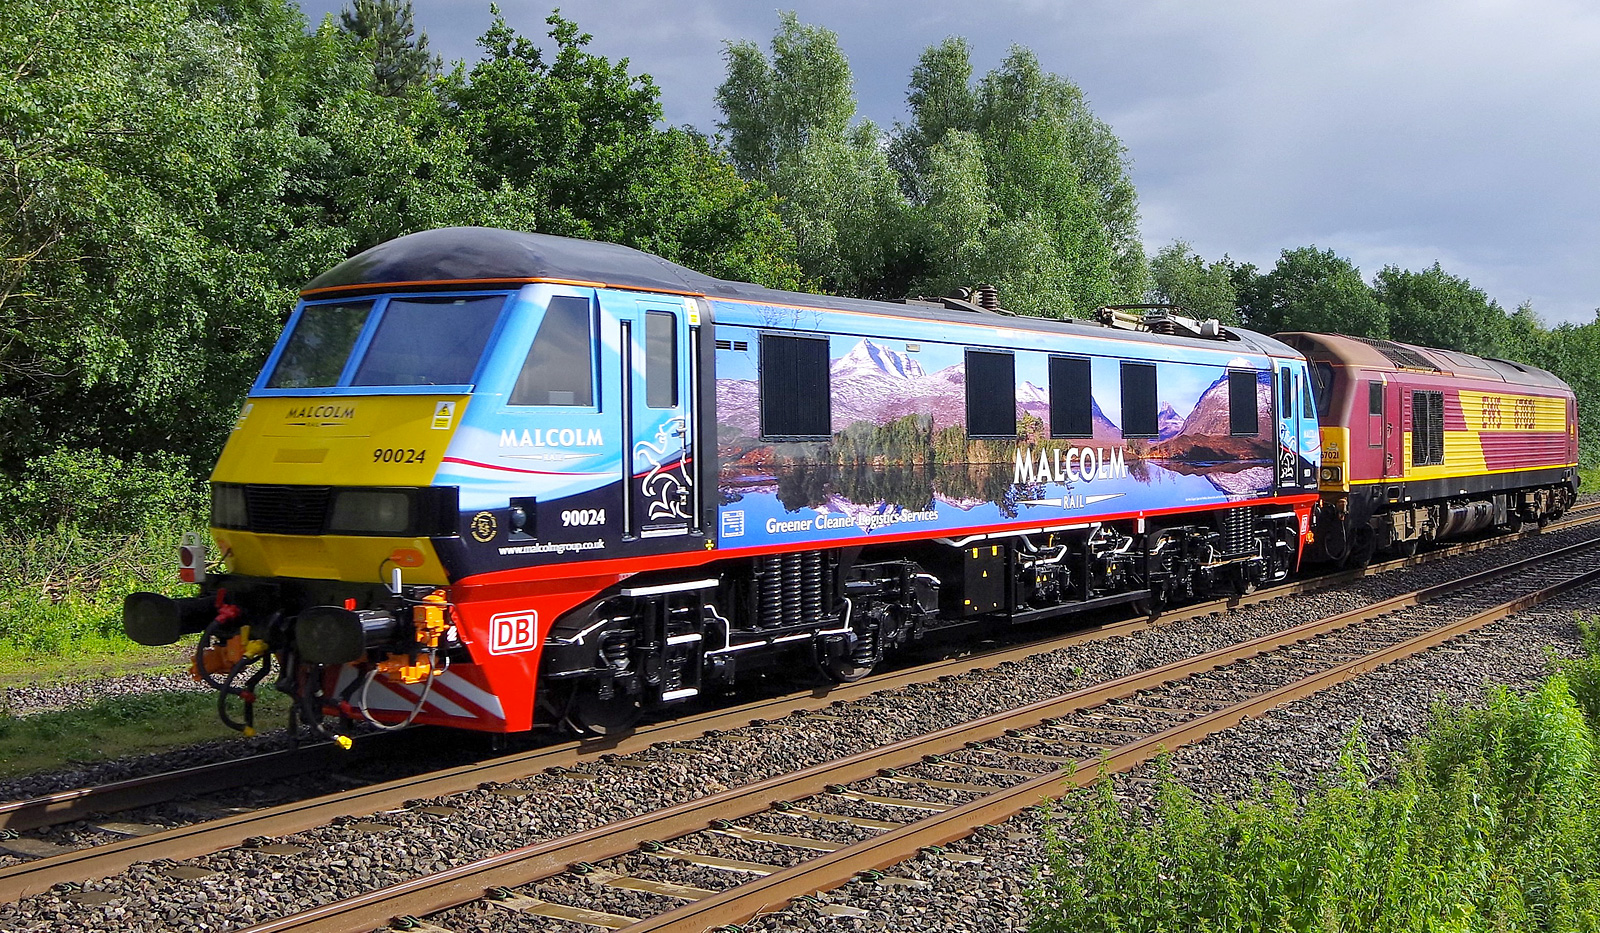 [UK] Neat! DB Cargo Class 90 in Malcolm livery